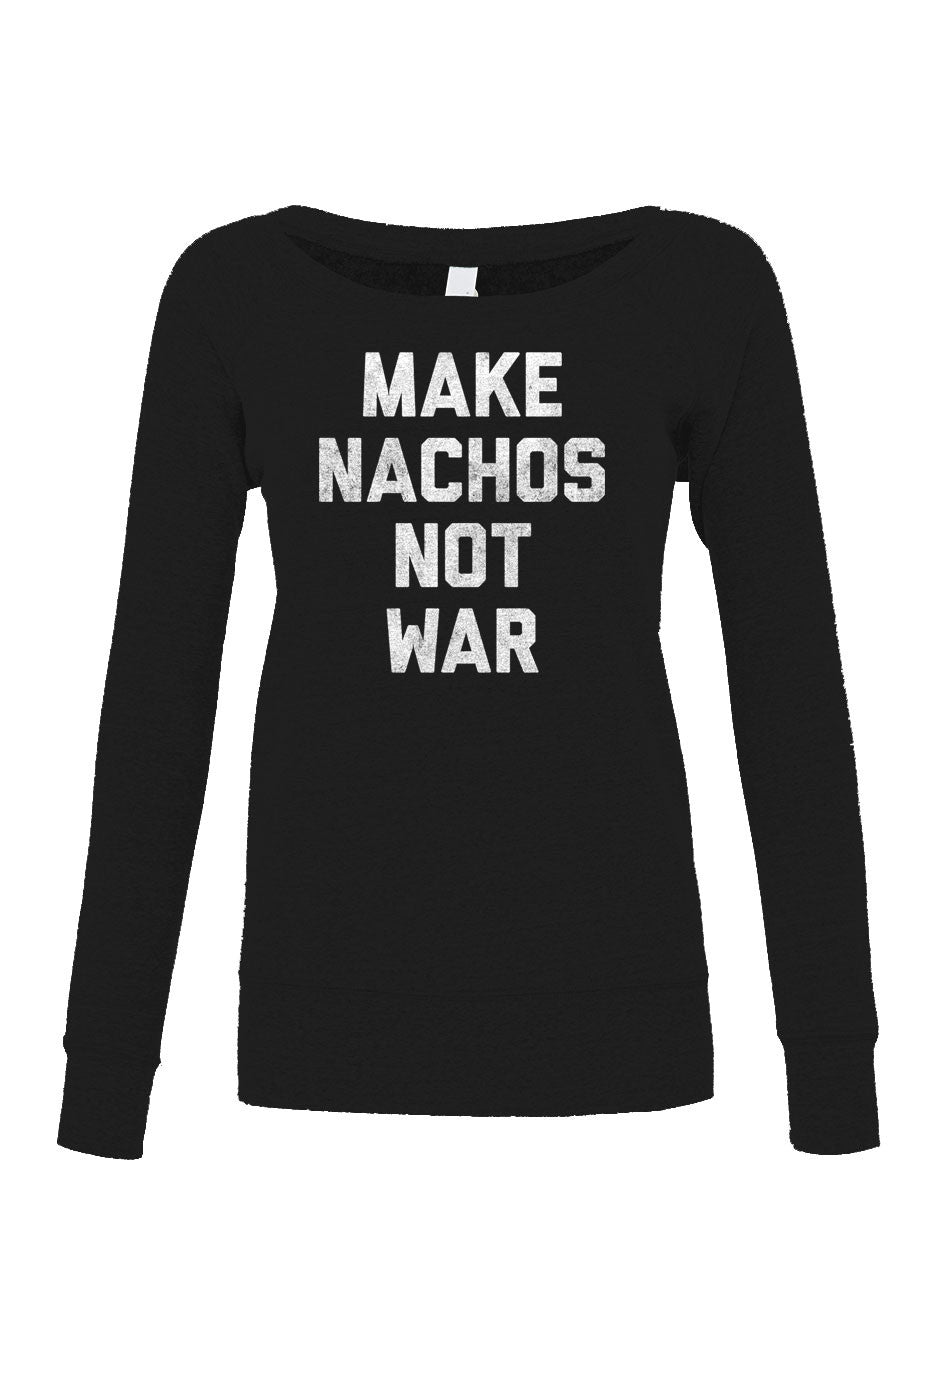 Women's Make Nachos Not War Scoop Neck Fleece - Juniors Fit